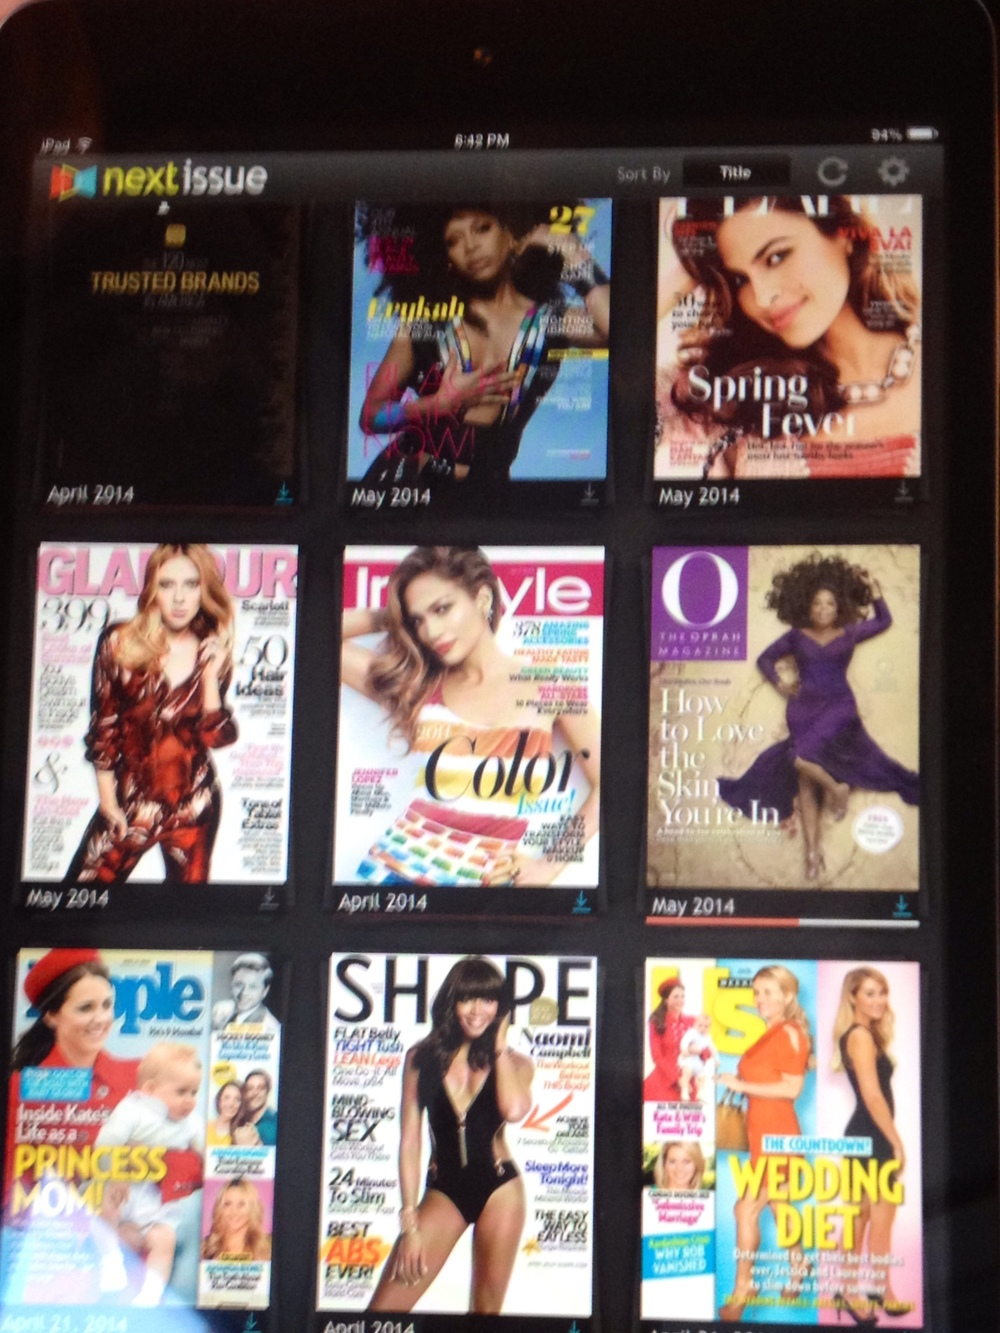 No paper waste at GlowOut. Catch up on all your reading on their IPAD's stocked with the latest mags.